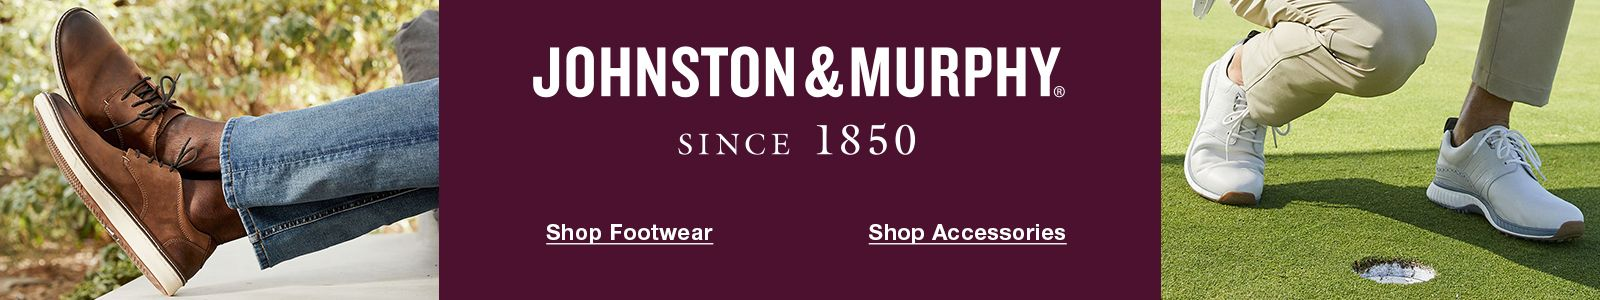 Johnston and Murphy, Since 1850, Shop Footwear, Shop Accessories